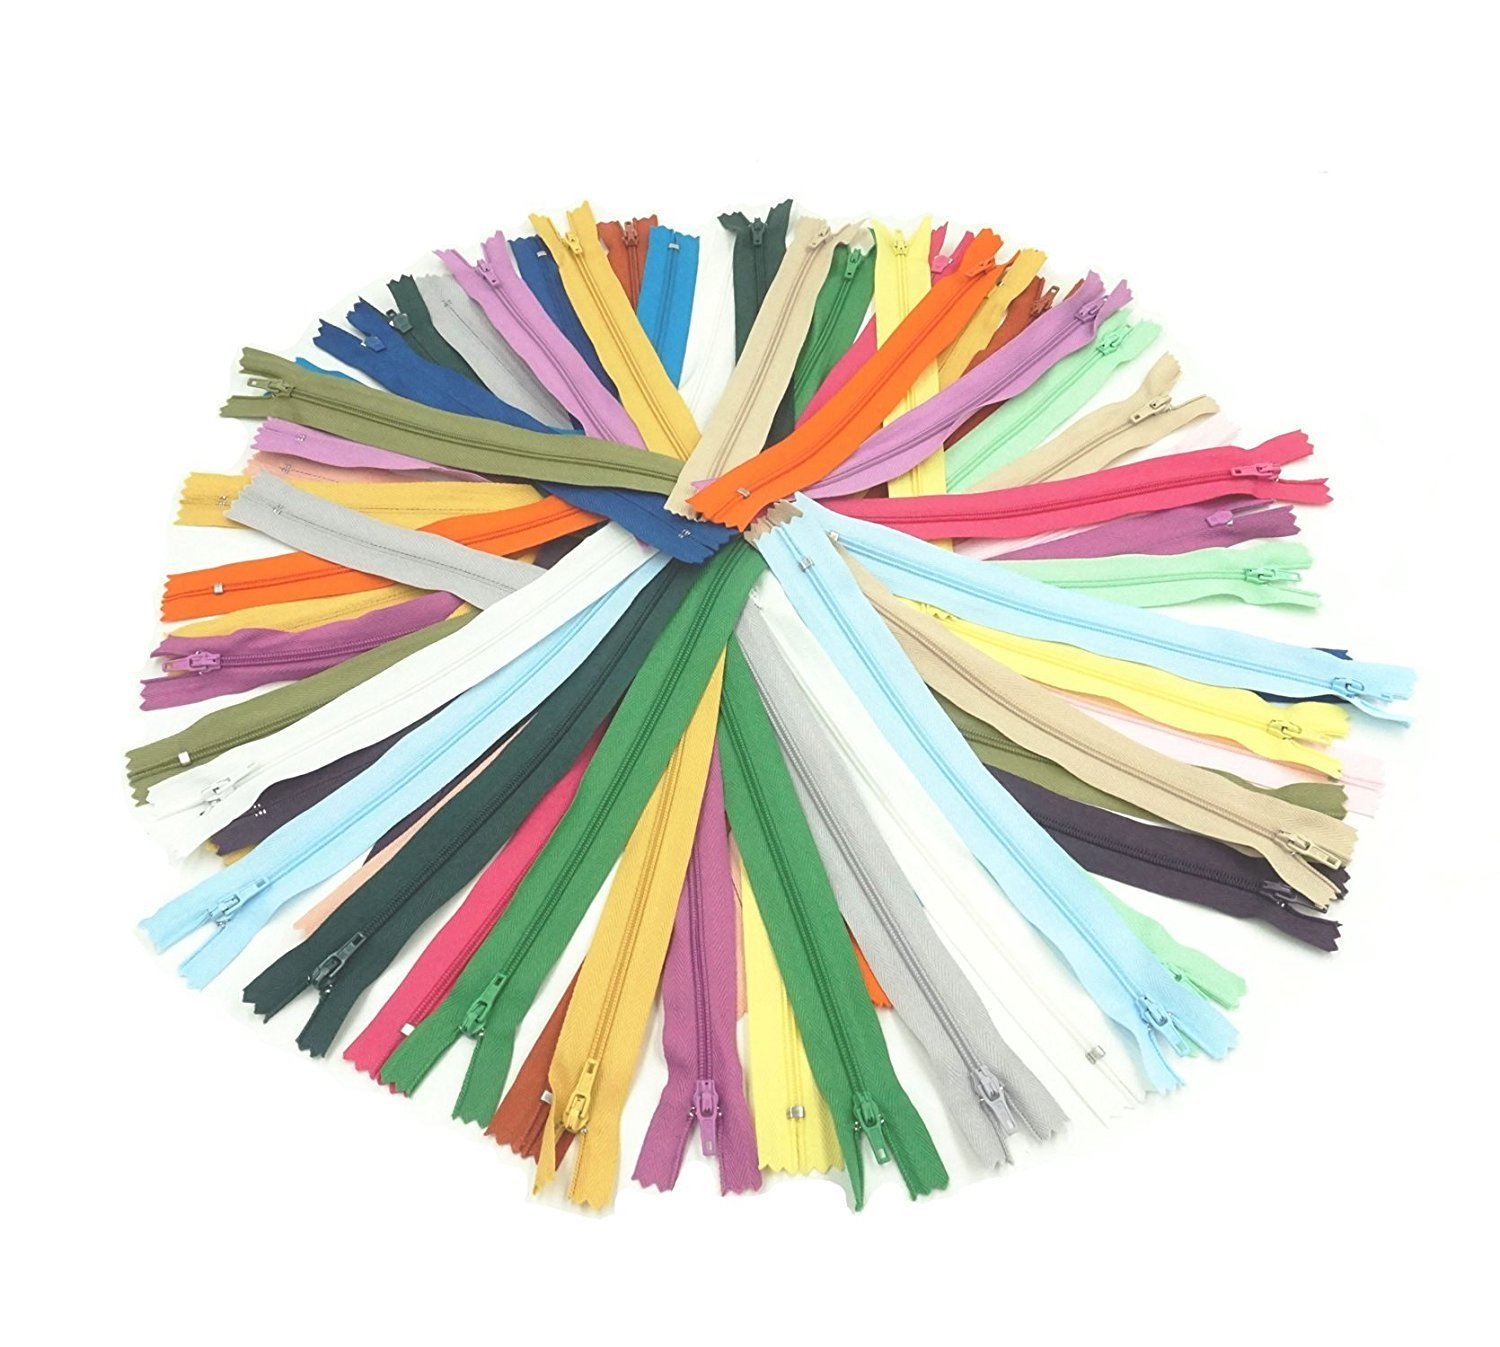 SUNREEK 60 Pcs Mix Nylon Coil Zippers Tailor Sewer Craft 9 Inch Crafter's Special, 20 Colors